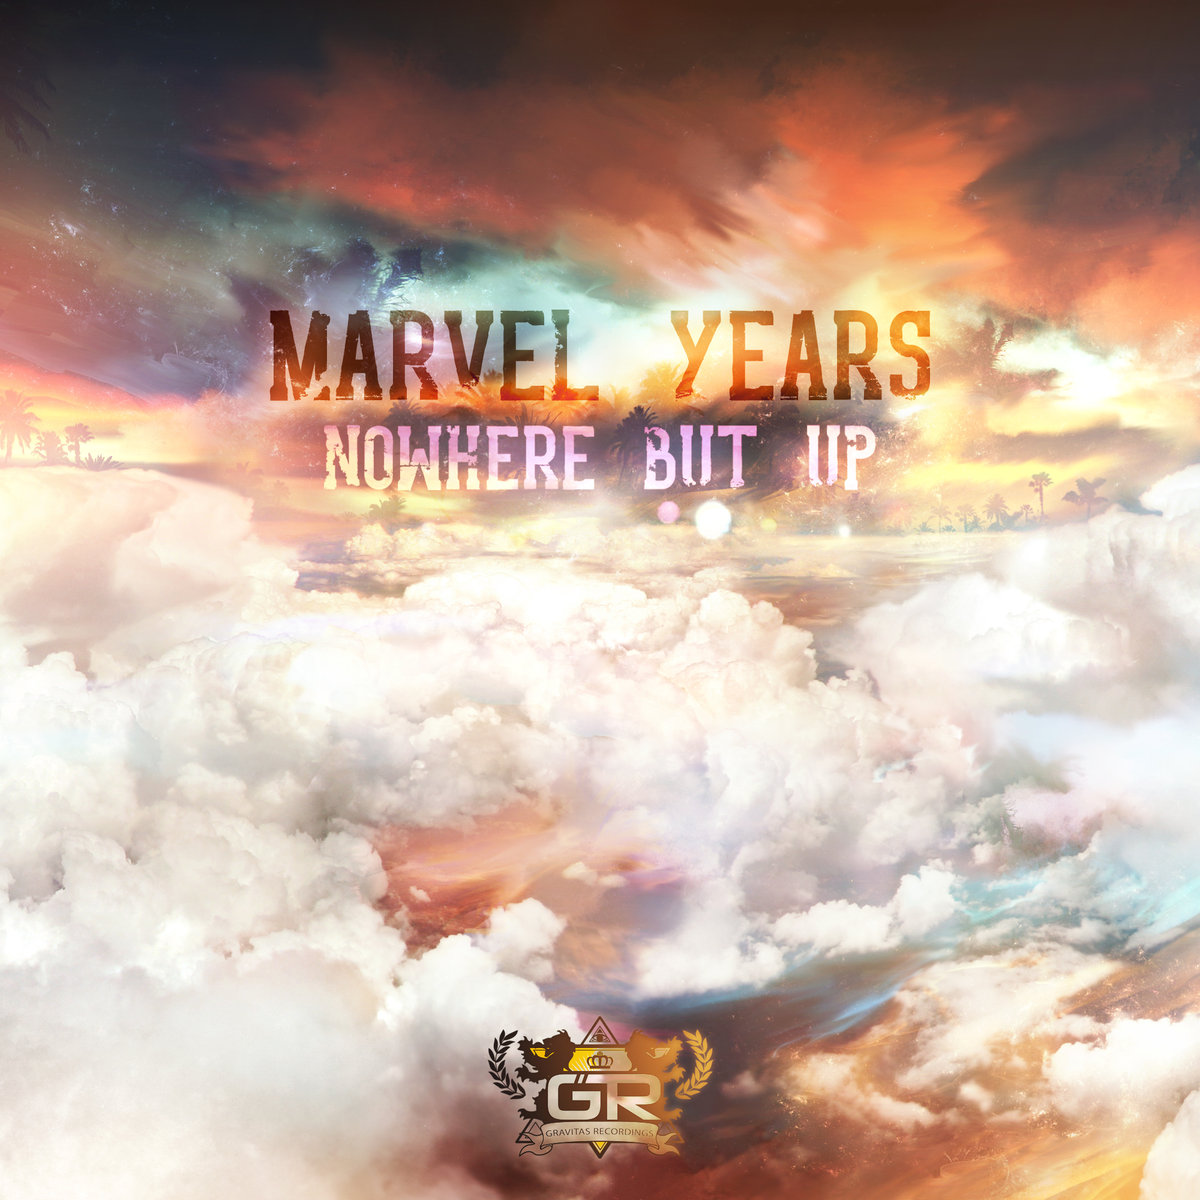 Marvel Years - The East @ 'Nowhere But Up' album (hip hop, electro)